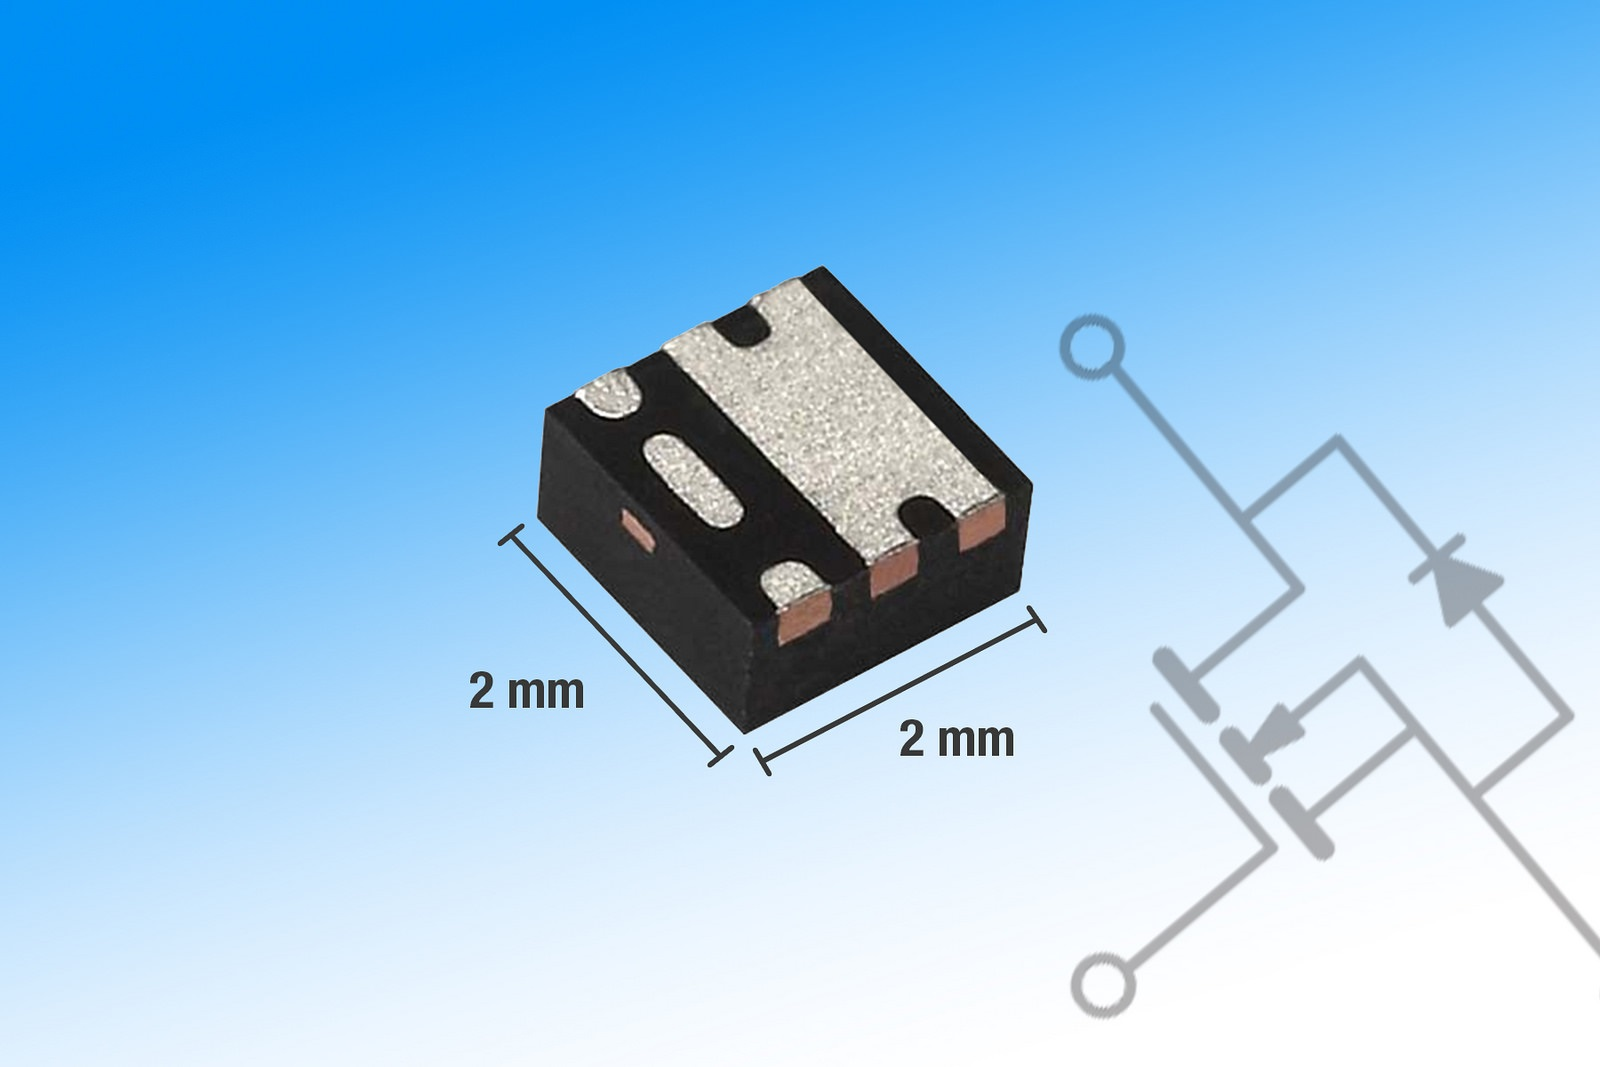 30V MOSFET adds to efficiency of mobile devices